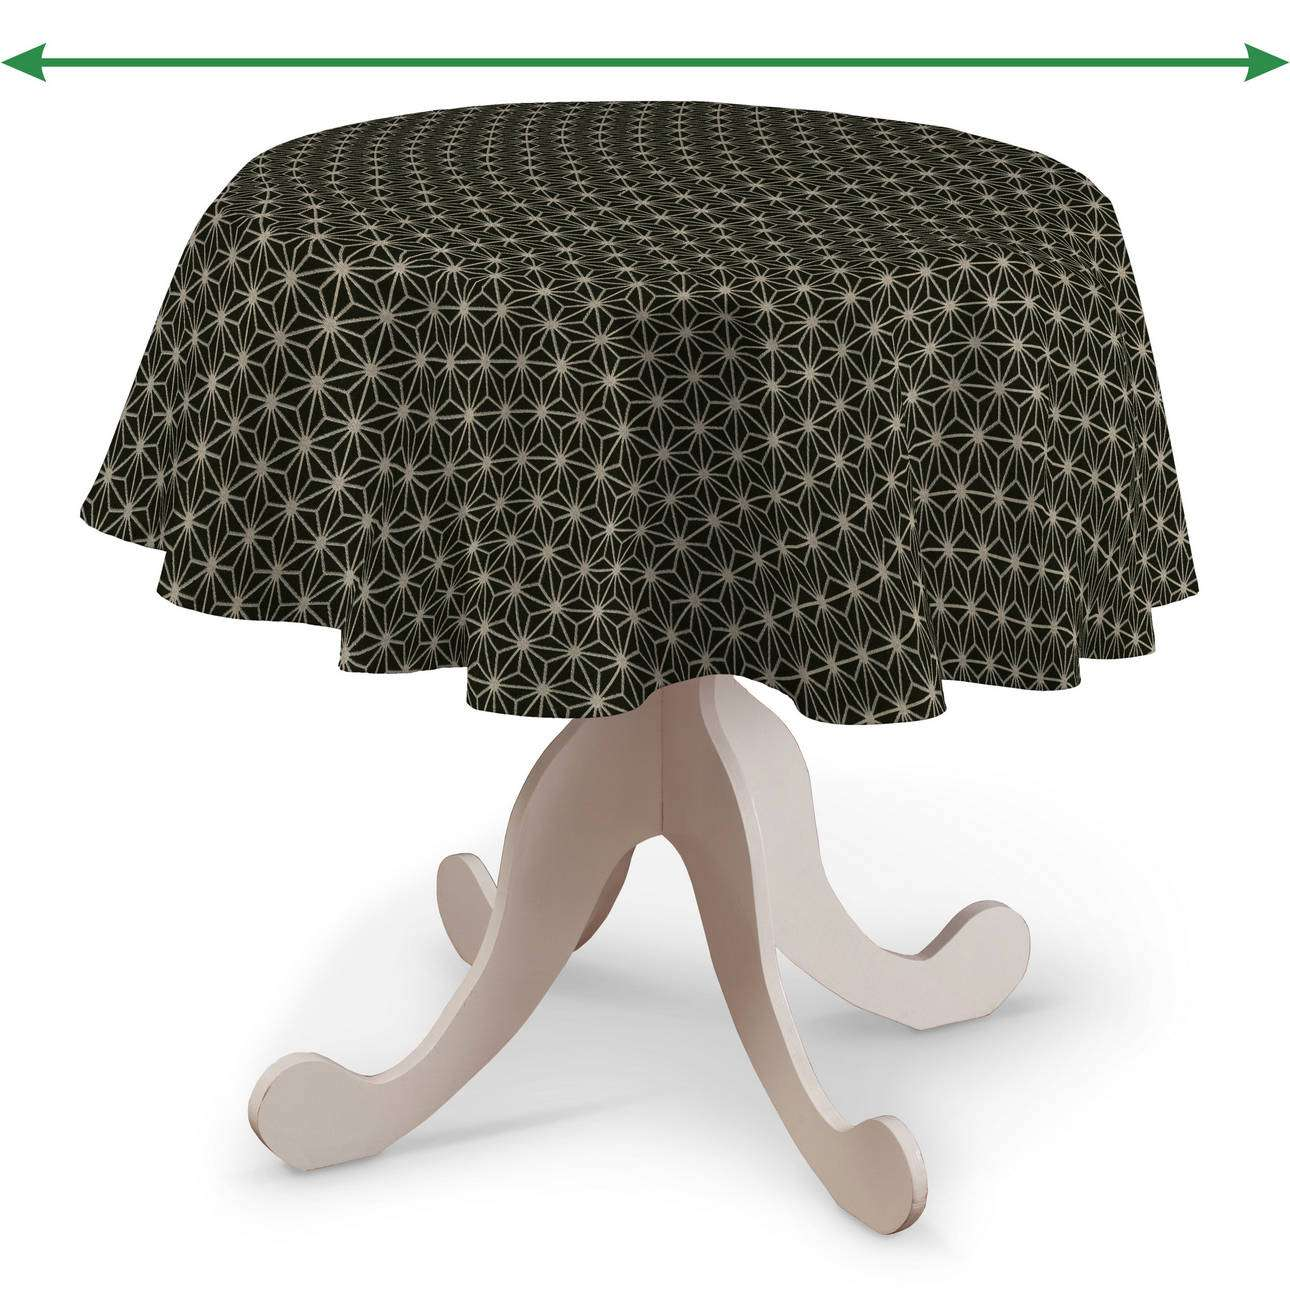 Round tablecloth in collection Black & White, fabric: 142-56